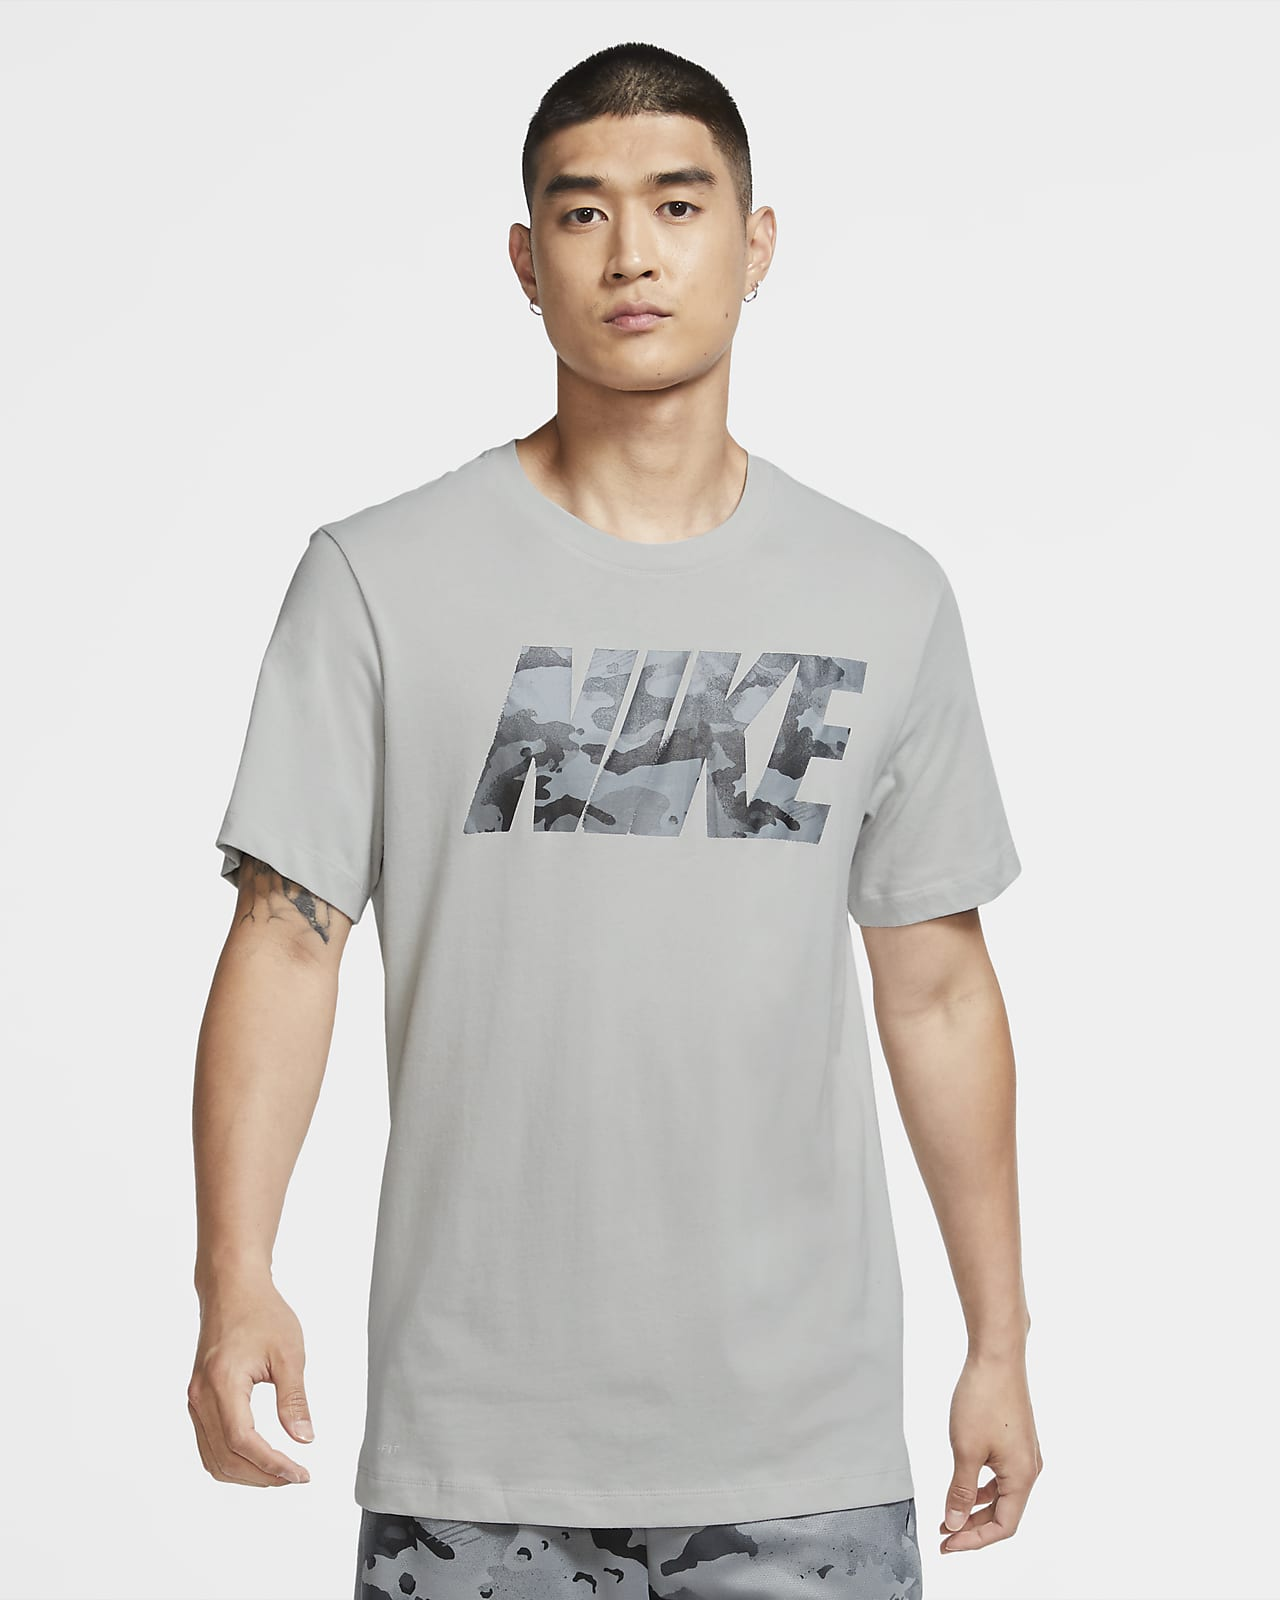 Nike Dri-FIT Trainings-T-Shirt im Camo-Design mit Logo für Herren